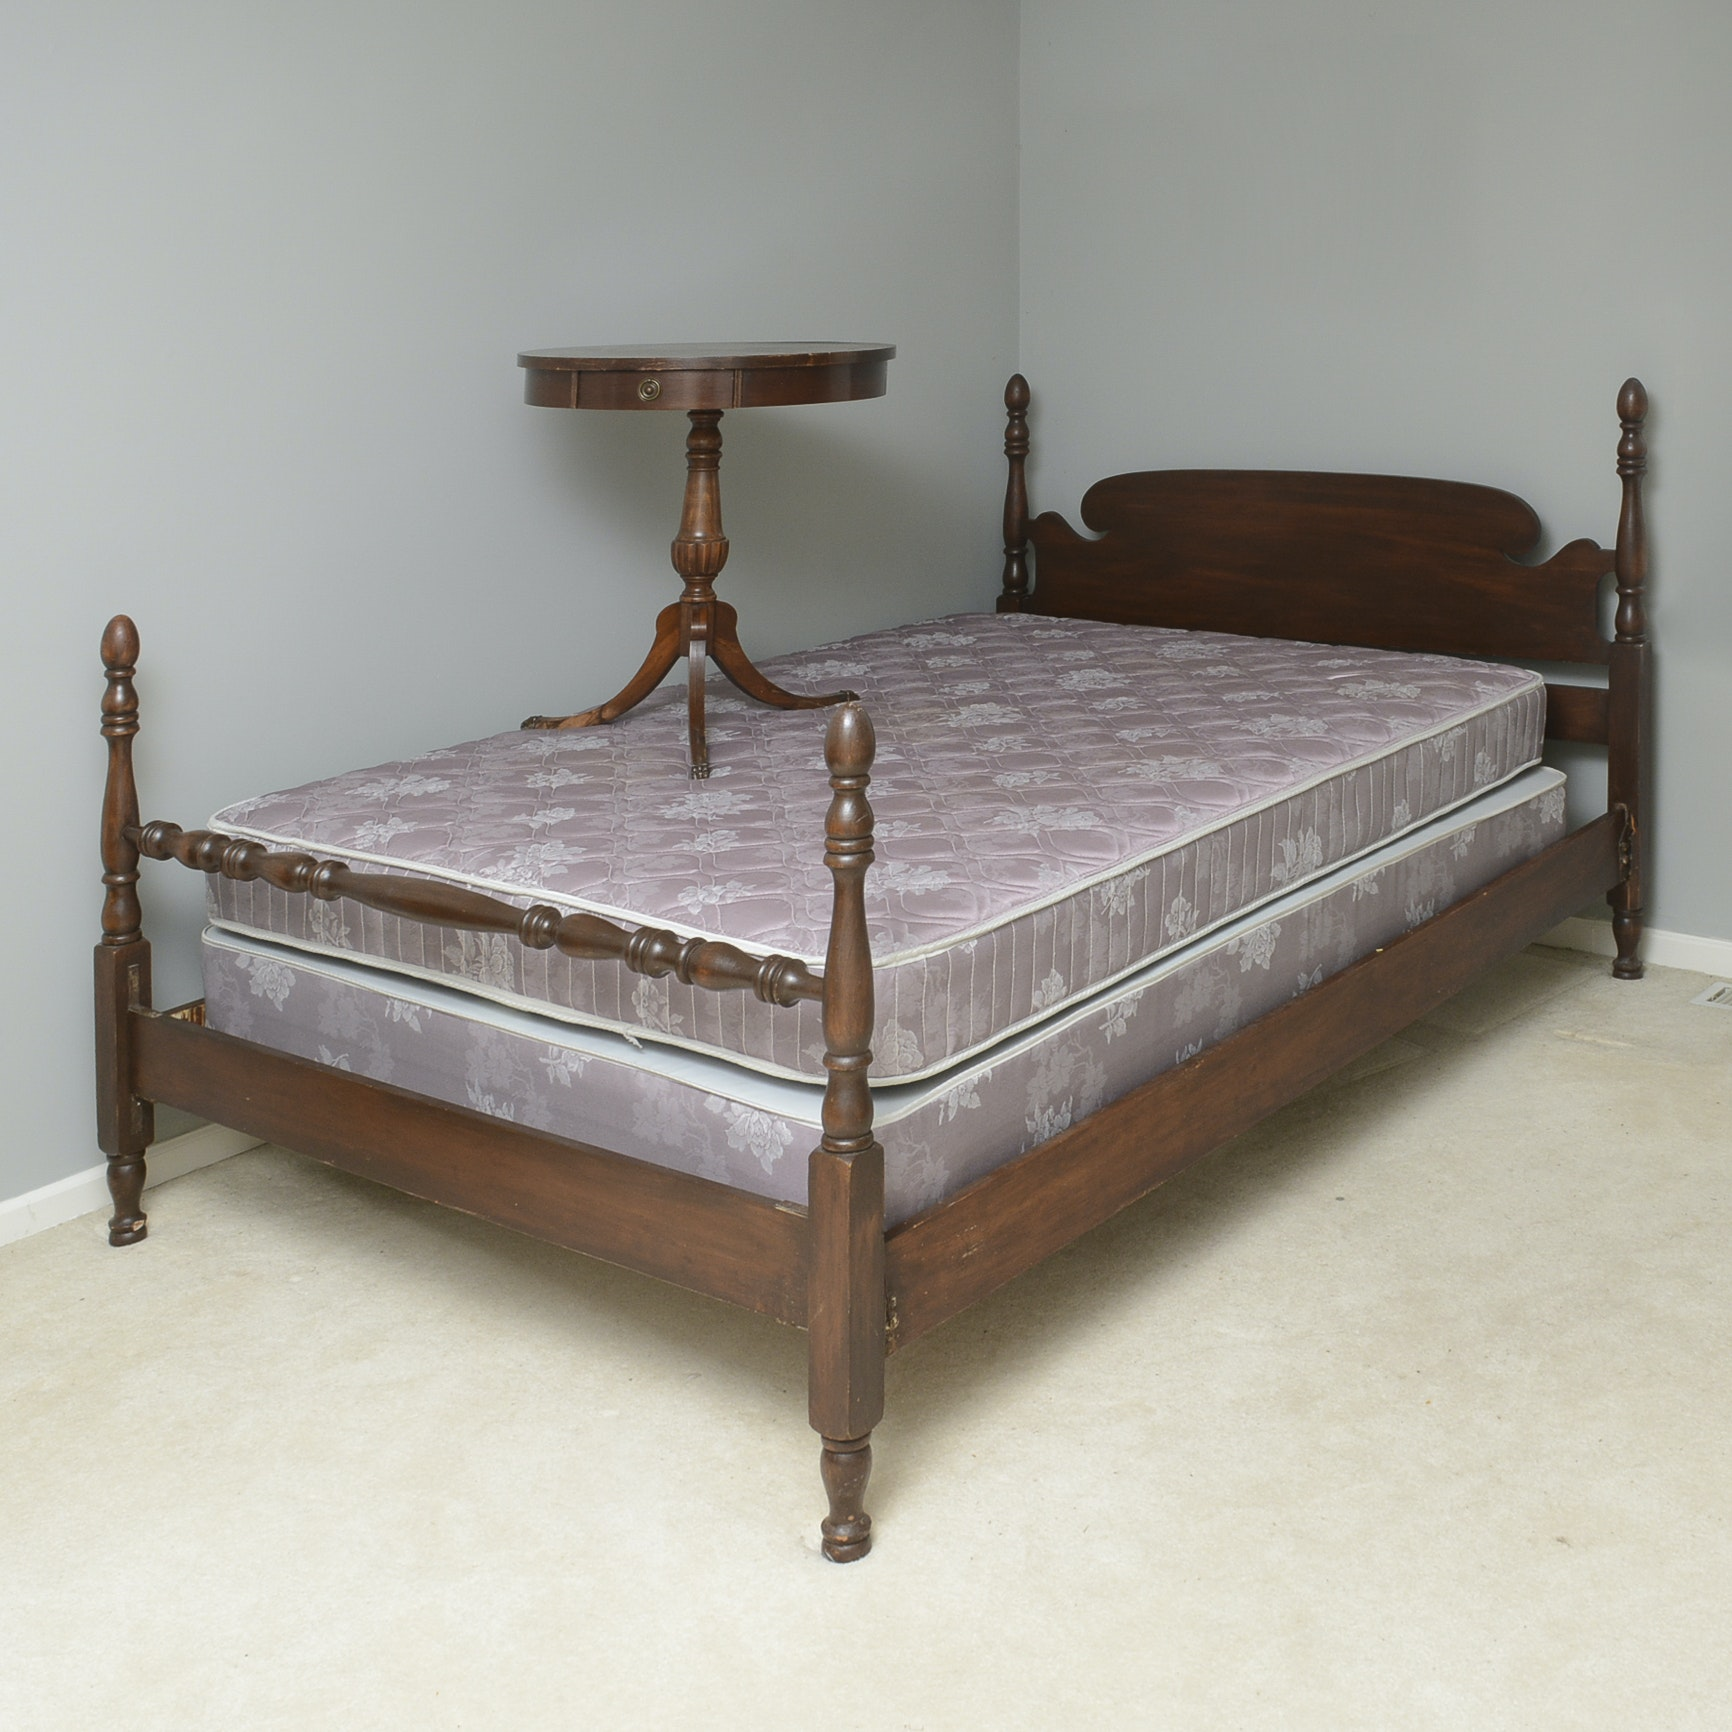 Vintage Wood Double Bed Frame and Pedestal Side Table